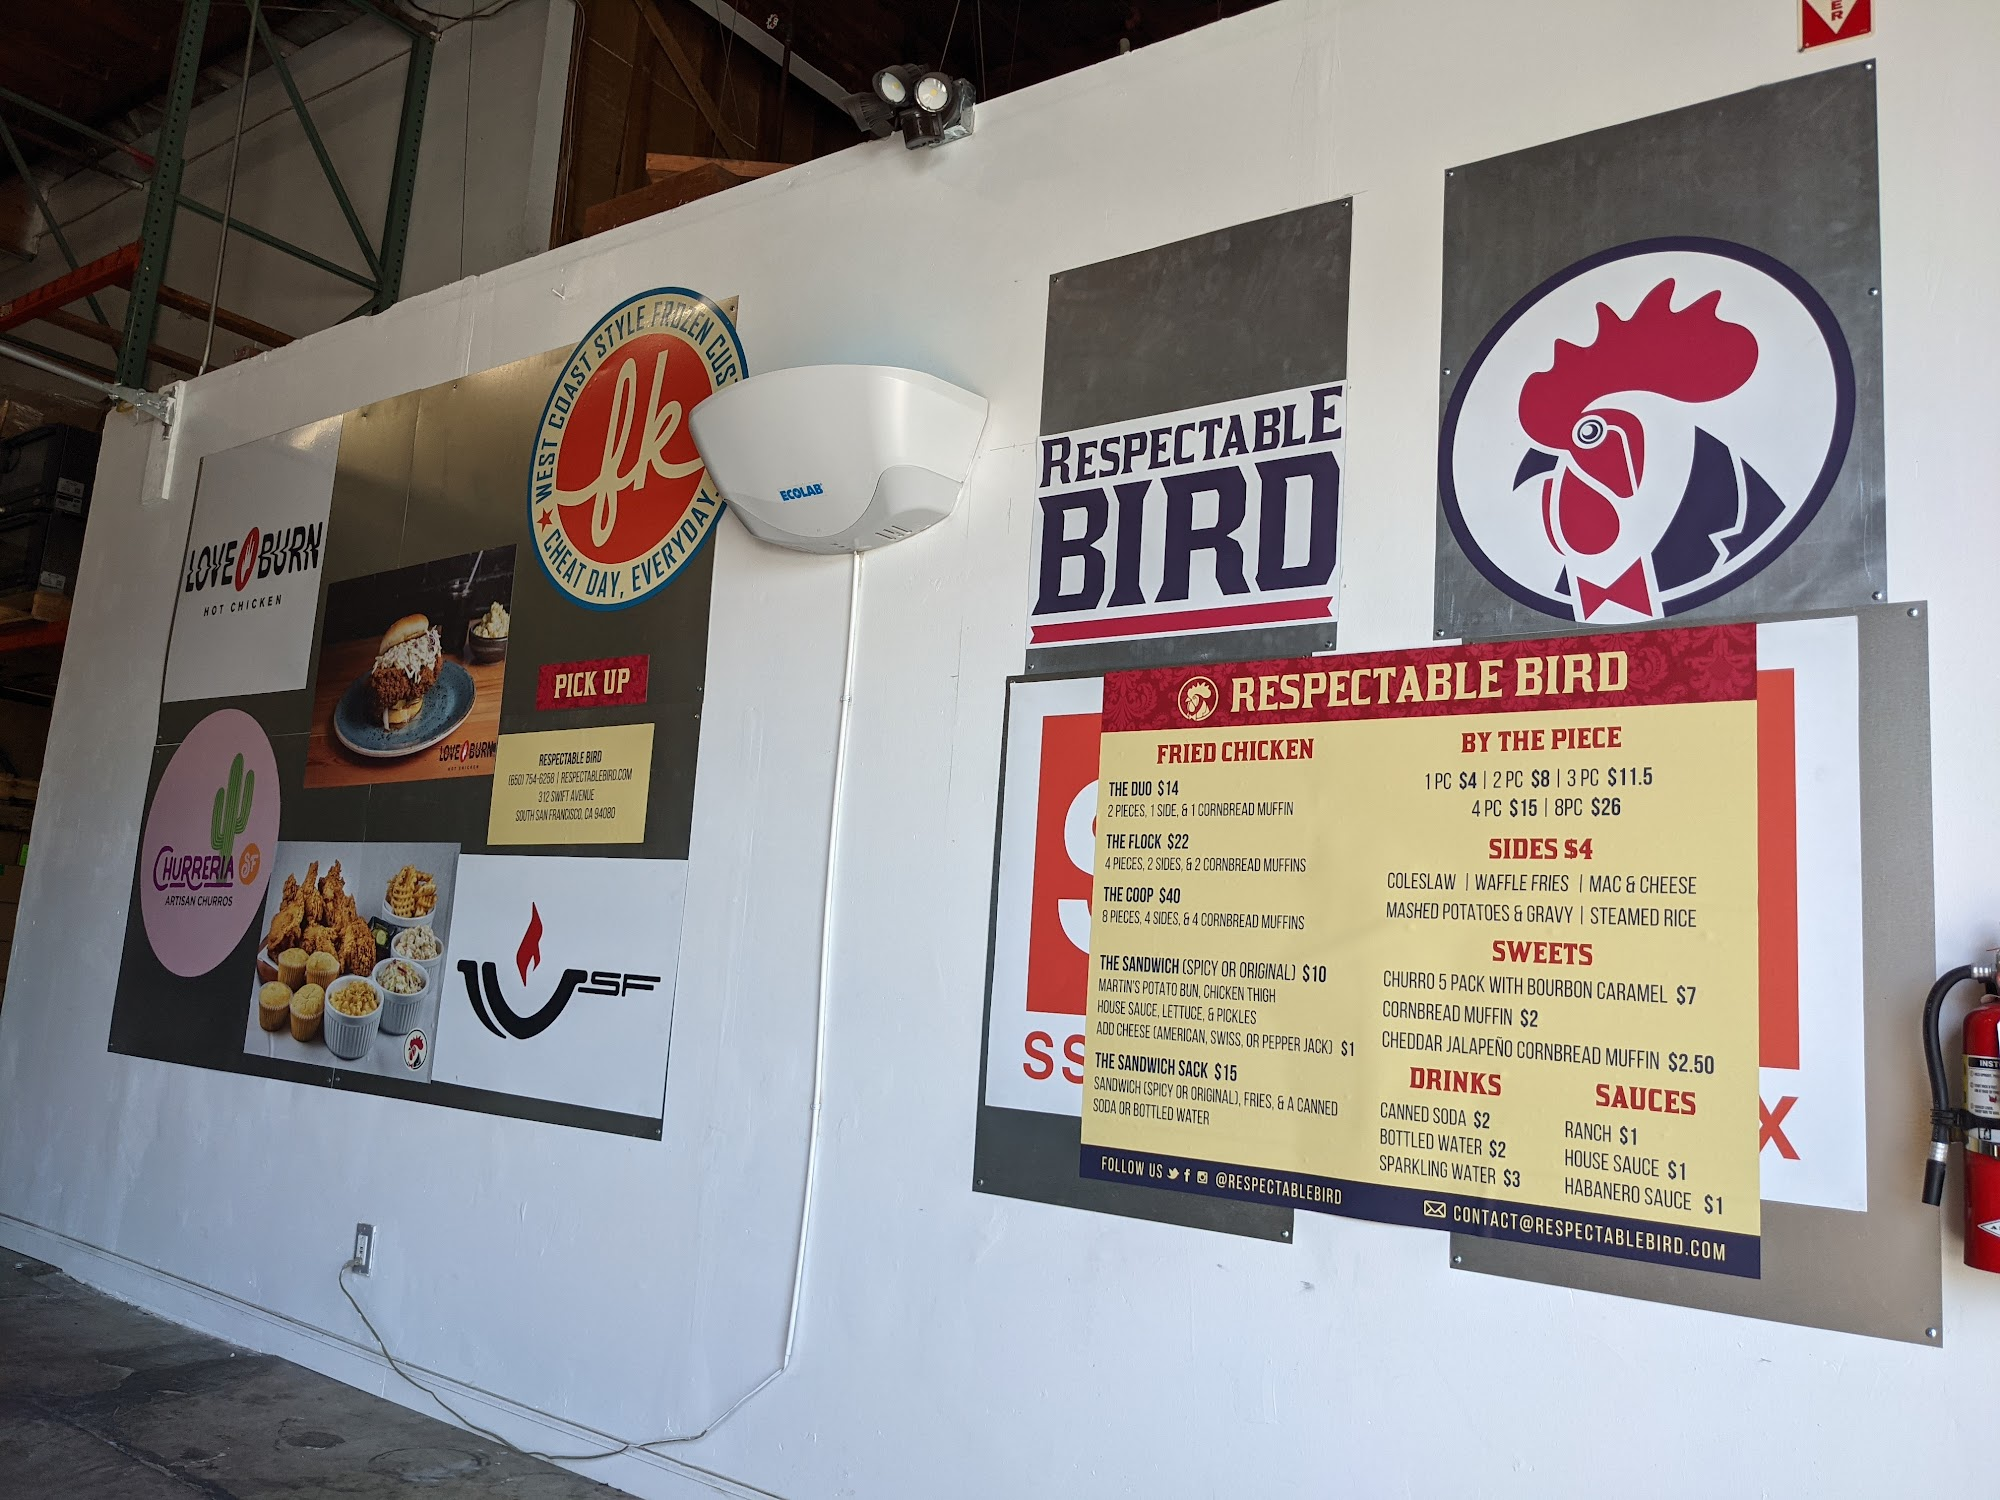 SSF Chickenbox 312 Swift Ave, South San Francisco